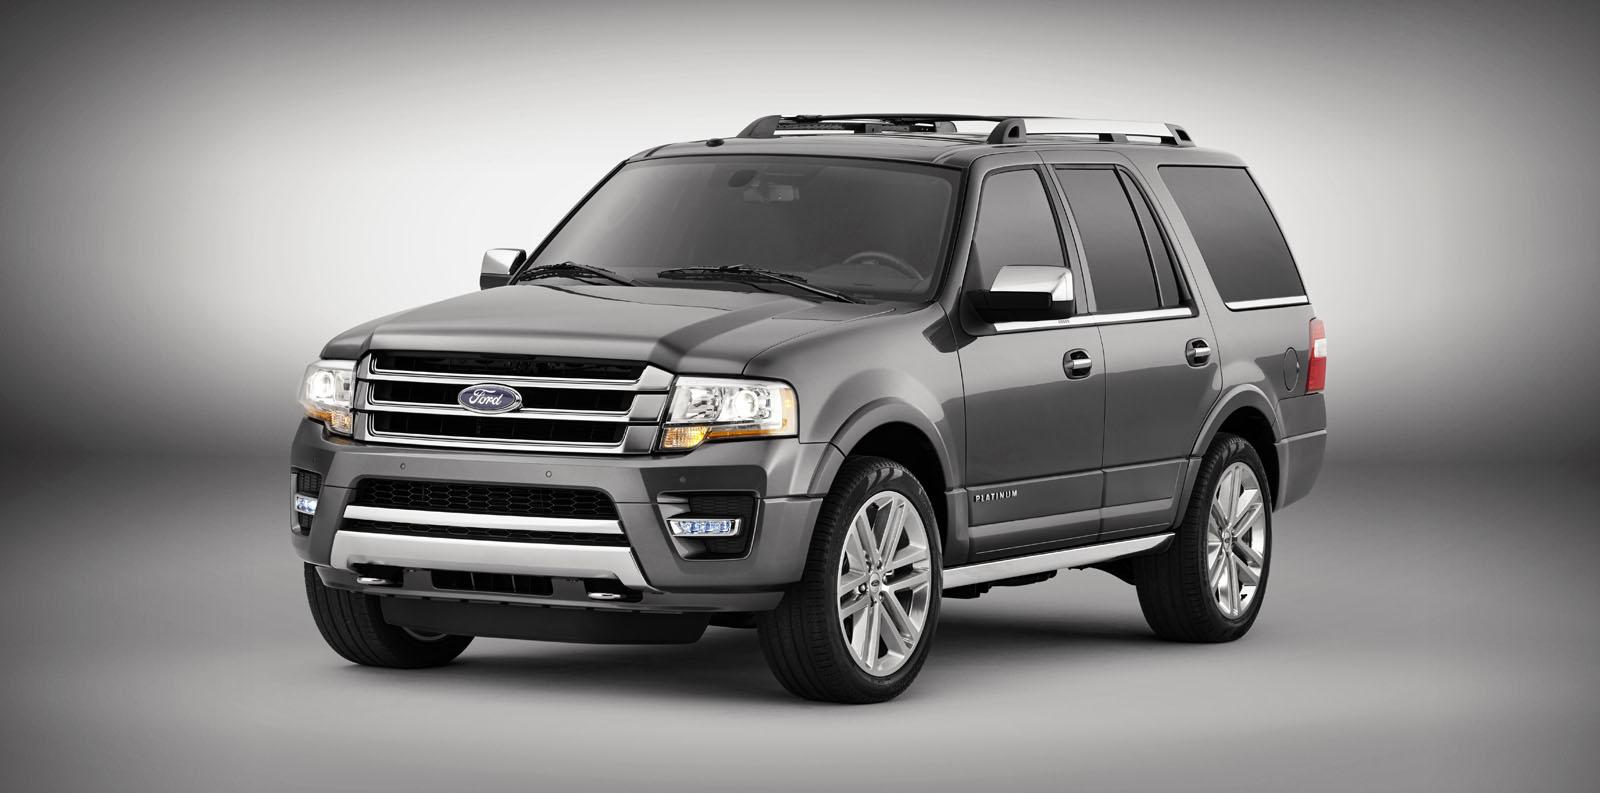 2011 Ford Expedition Repair Service Shop Manual Set Factory Suv Dealership Oem Two Volume Set Wiring Diagrams Manual Powertrain Controlemission Diagnosis Manual